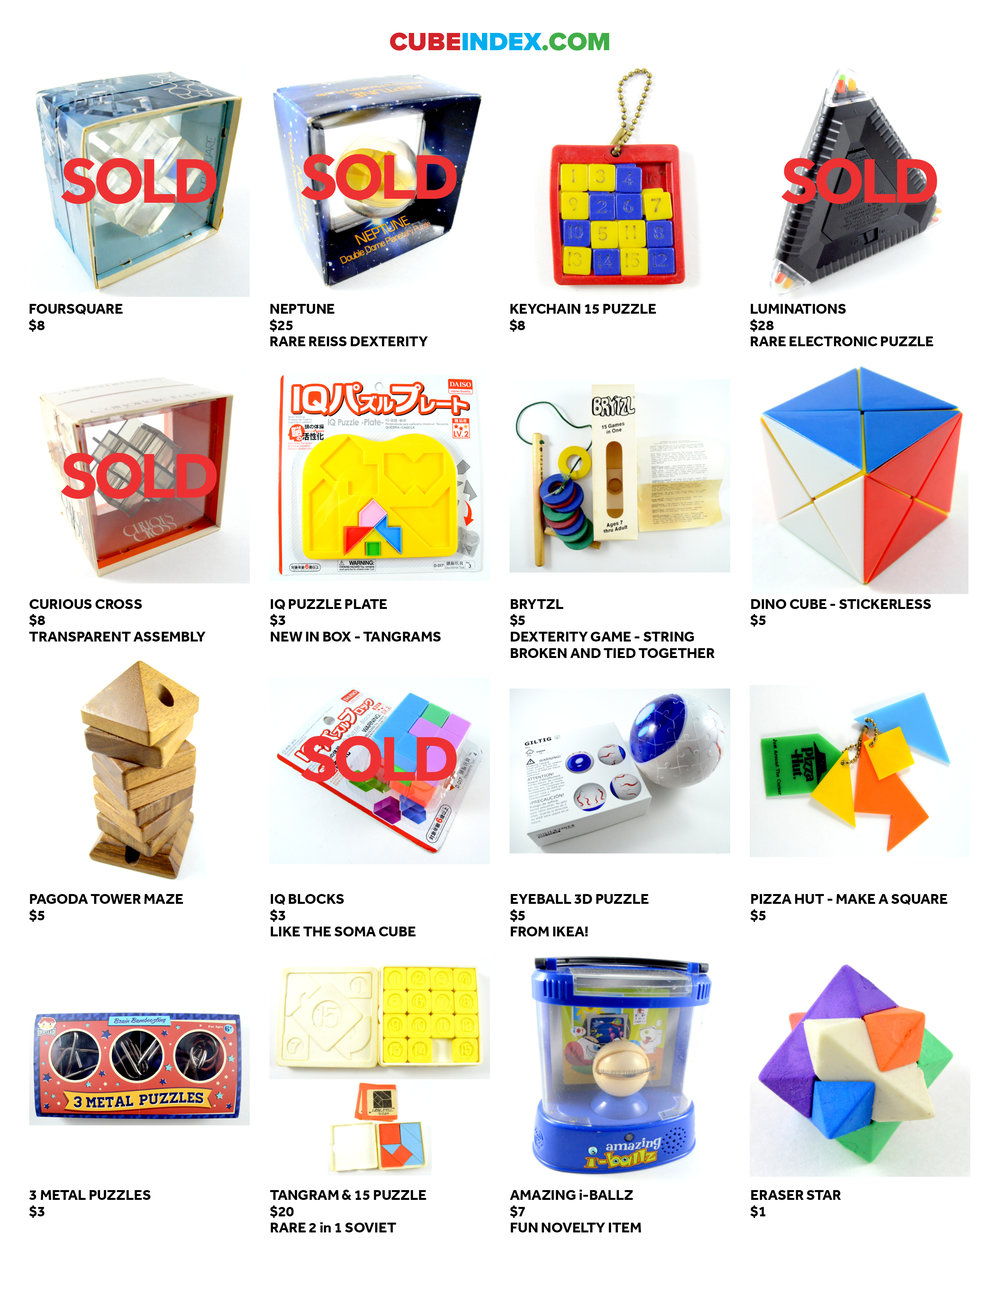 cube-index-for-sale-catalog-april-2017-v521.jpg